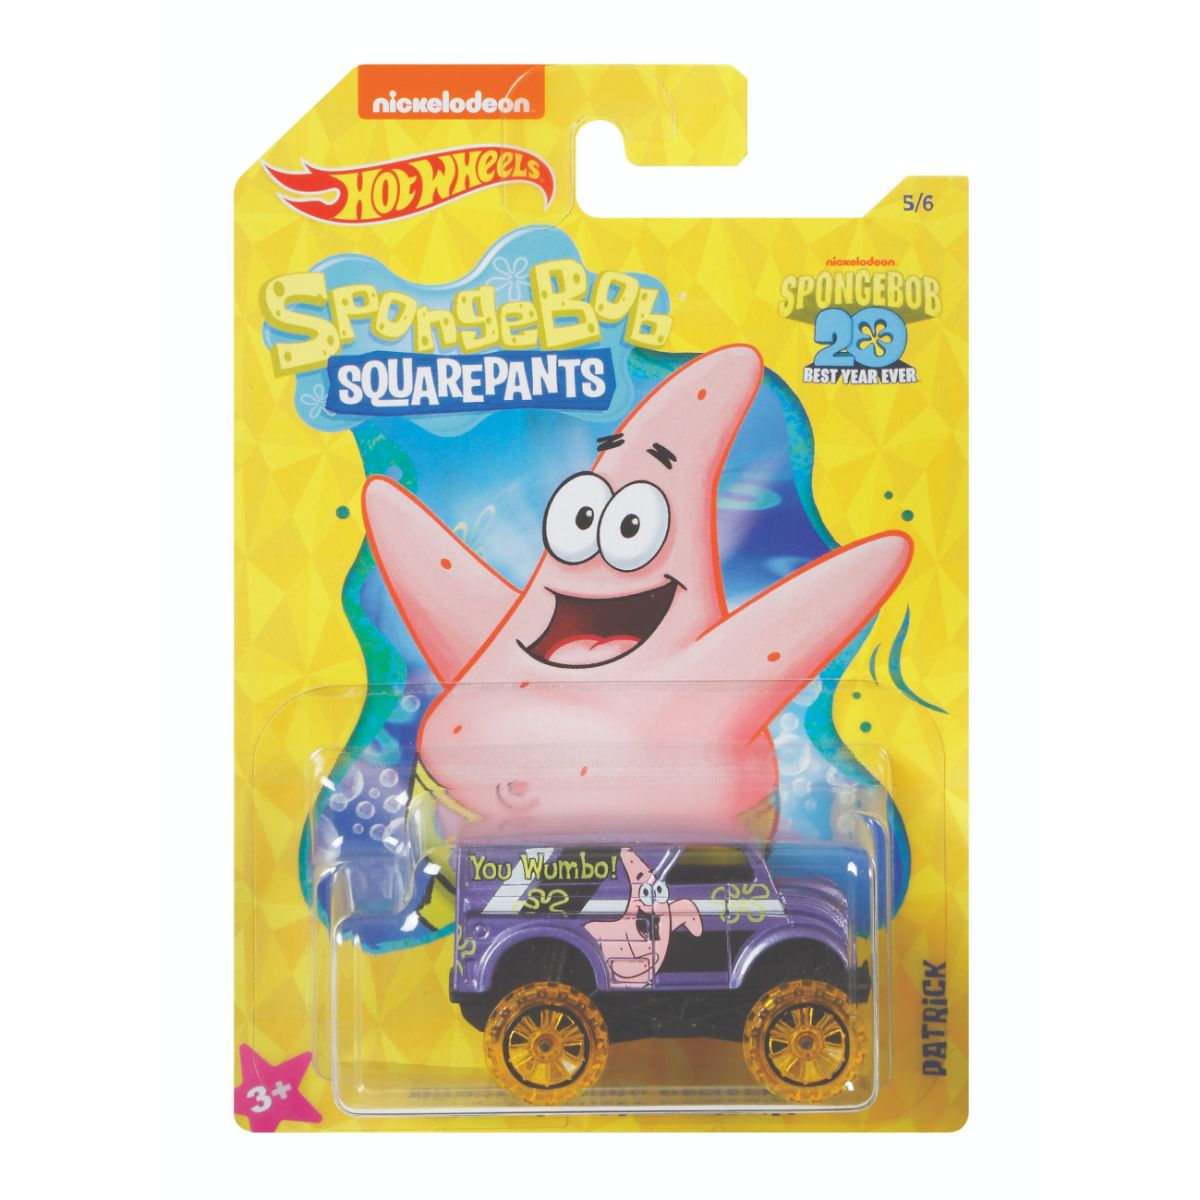 HOT WHEELS THEMED ENTERTAINMENT - PATRICK